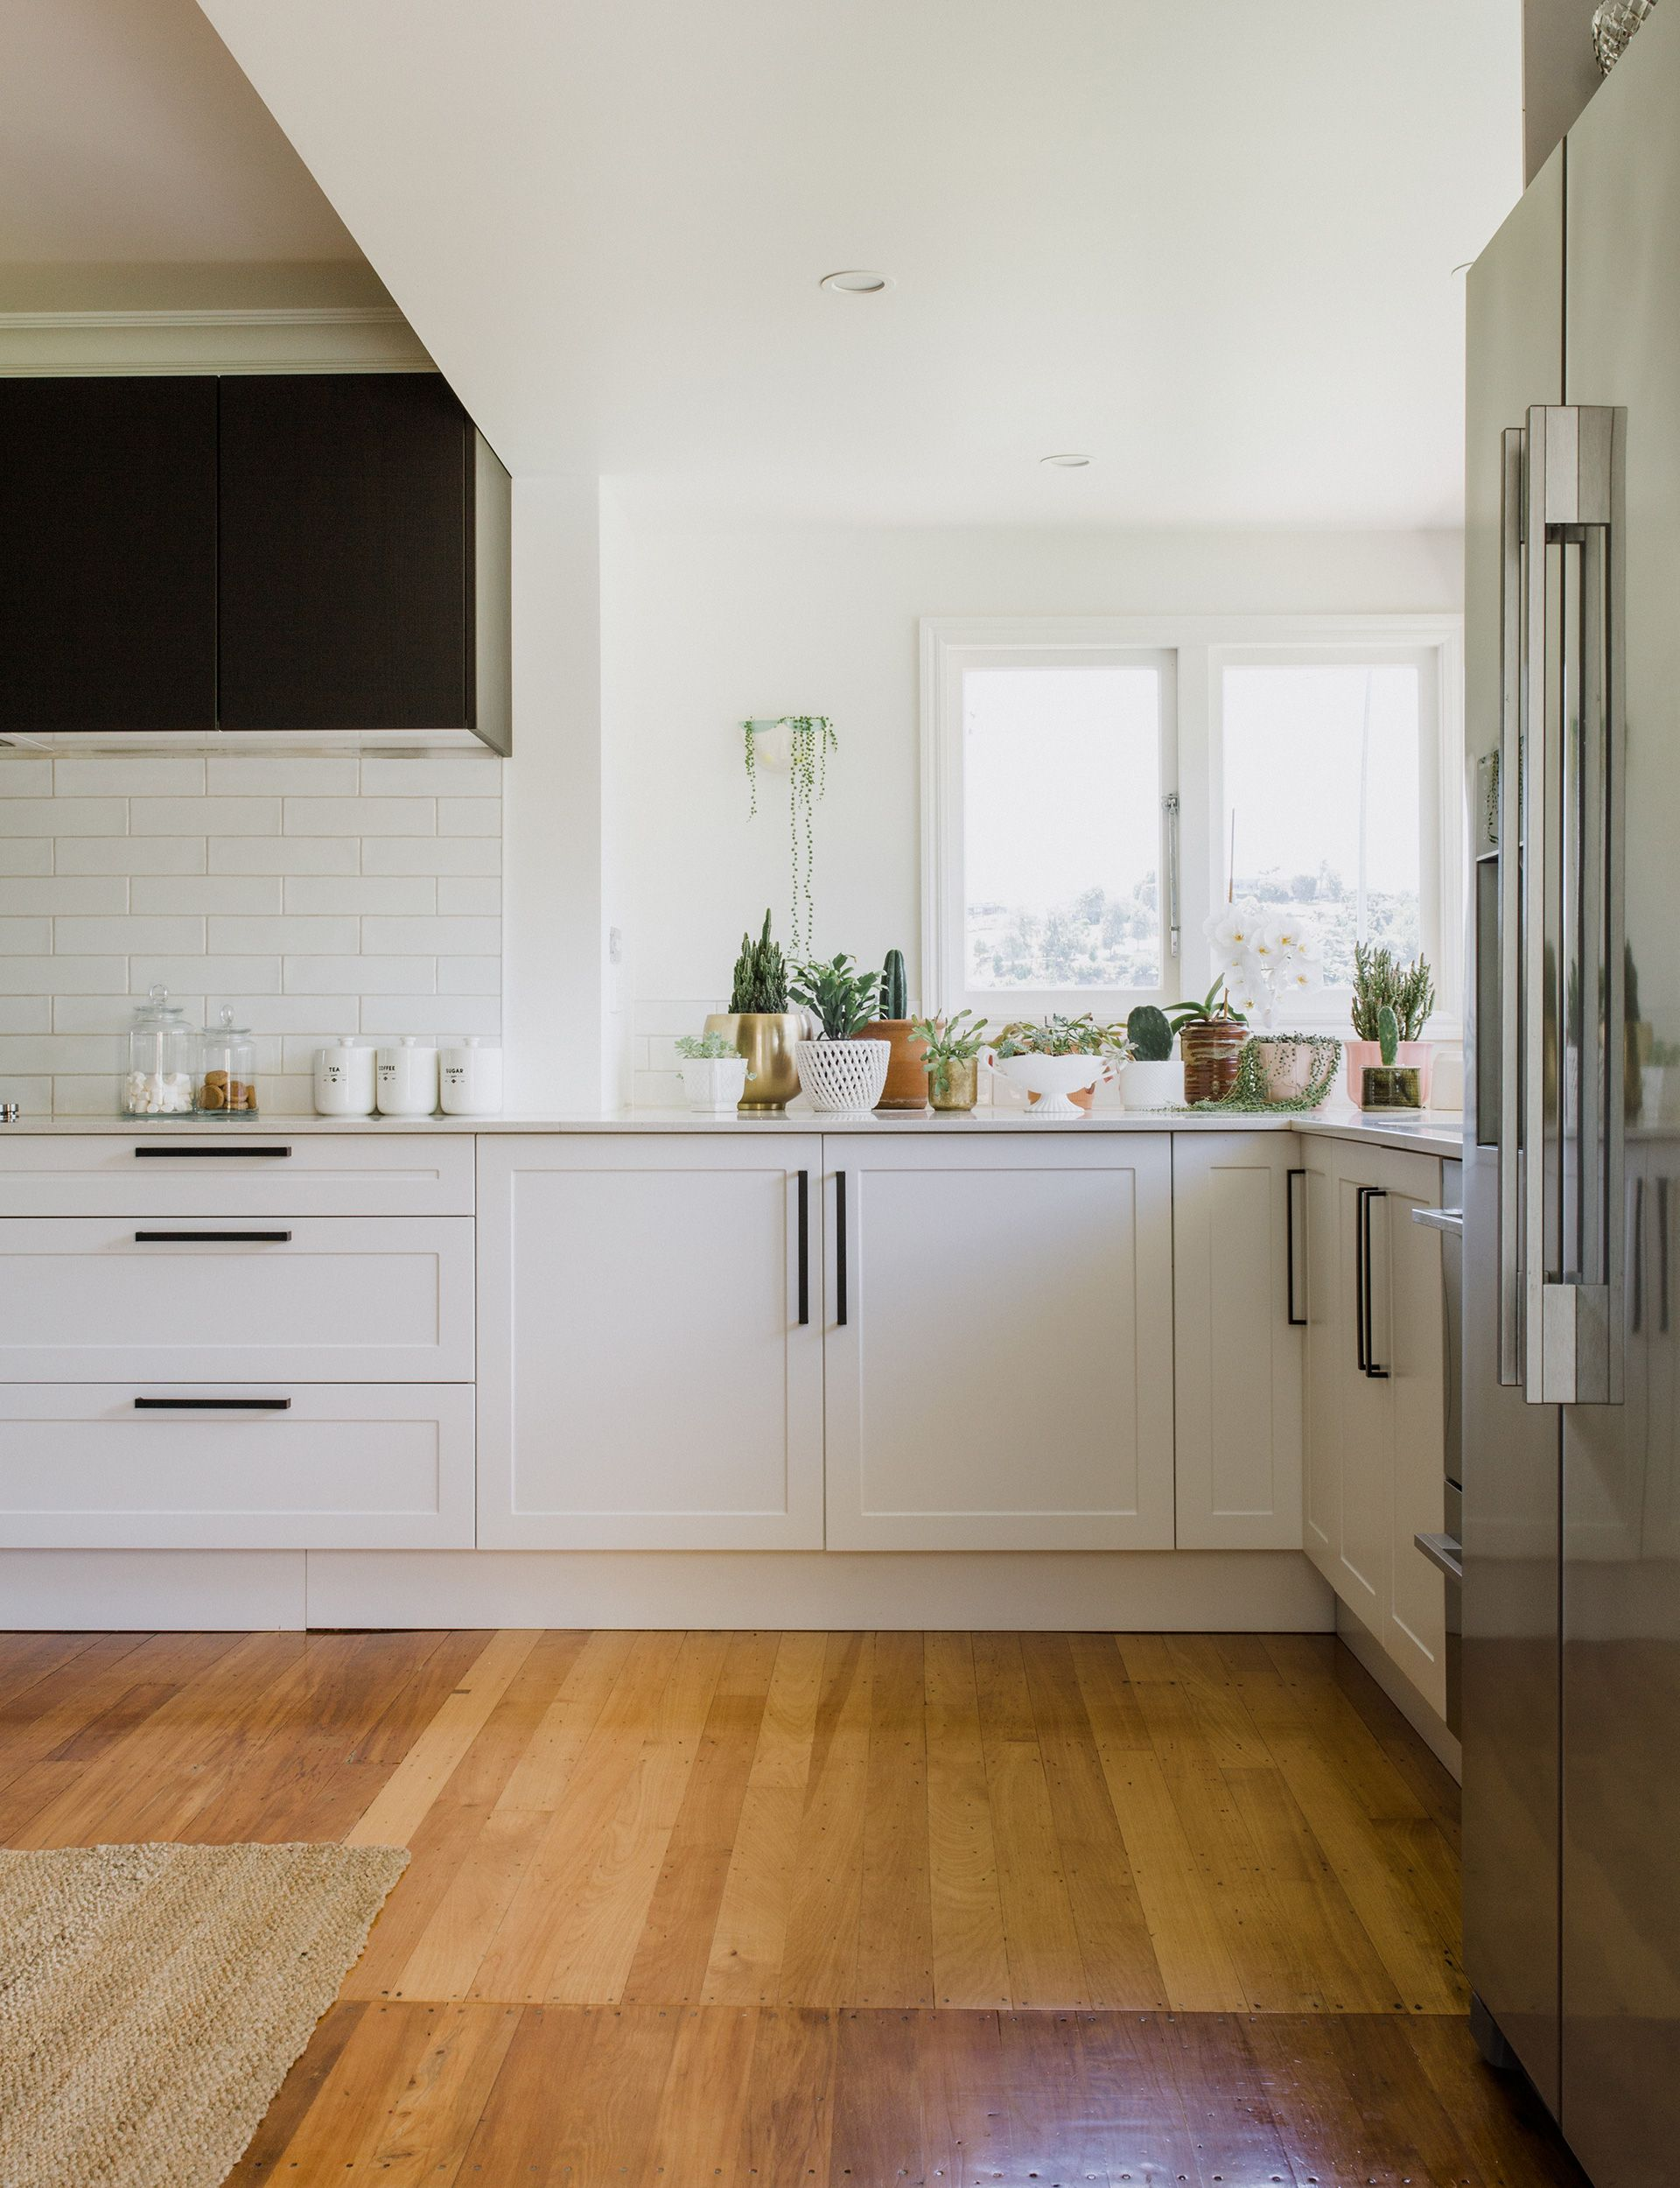 How this stunning kitchen achieved its modern art deco look on a